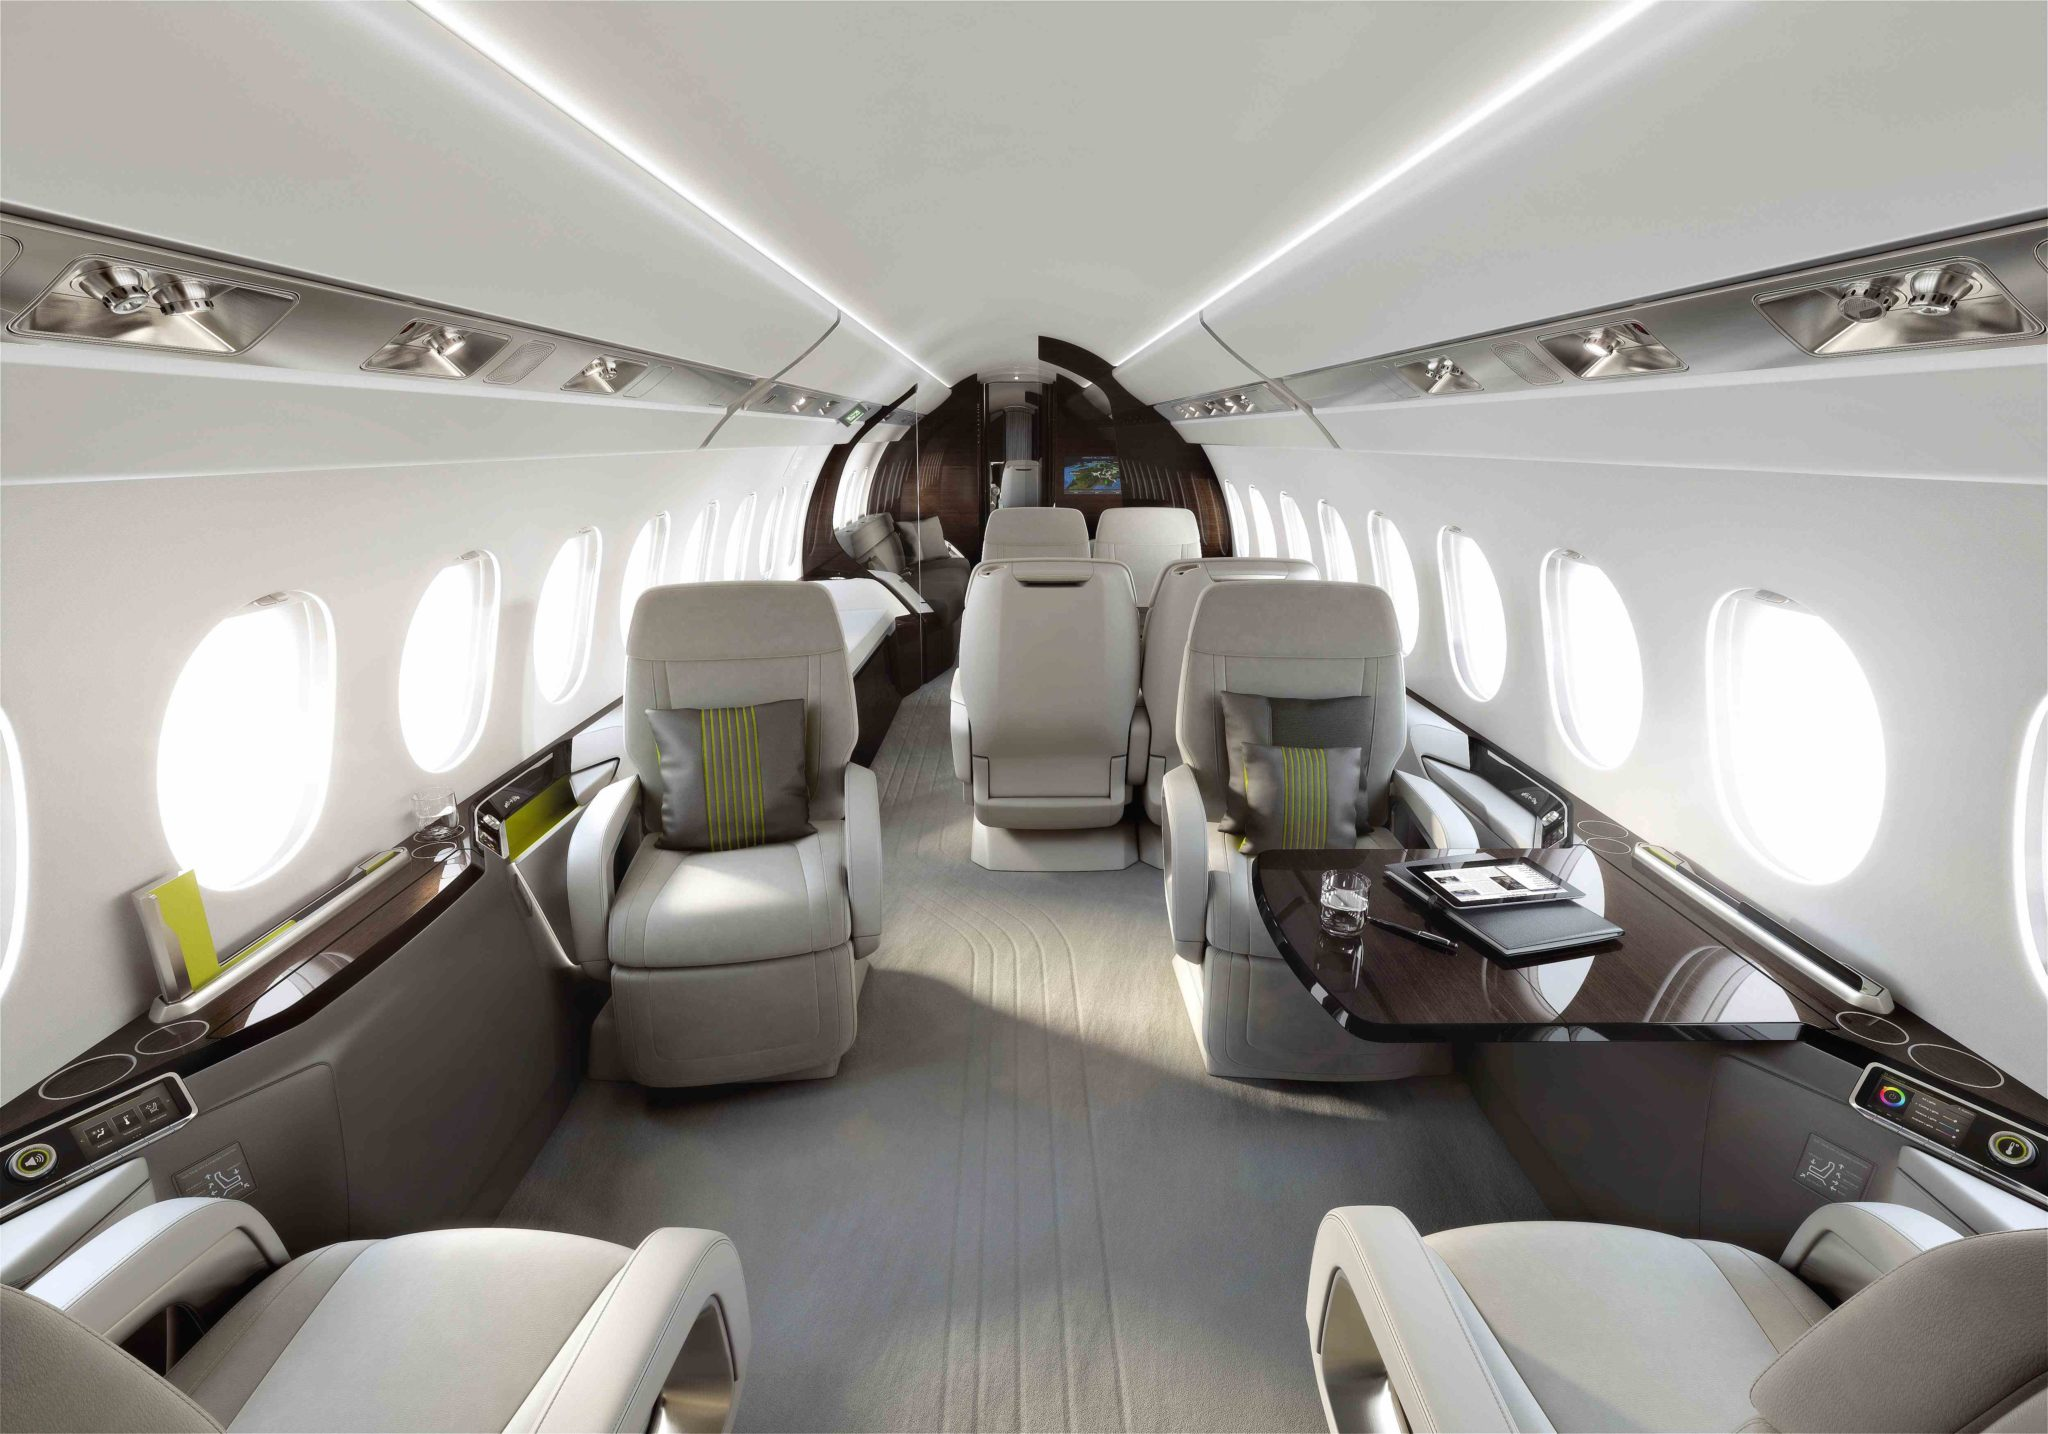 Dassault falcon 5x coming together quickly jetoptions Together interiors